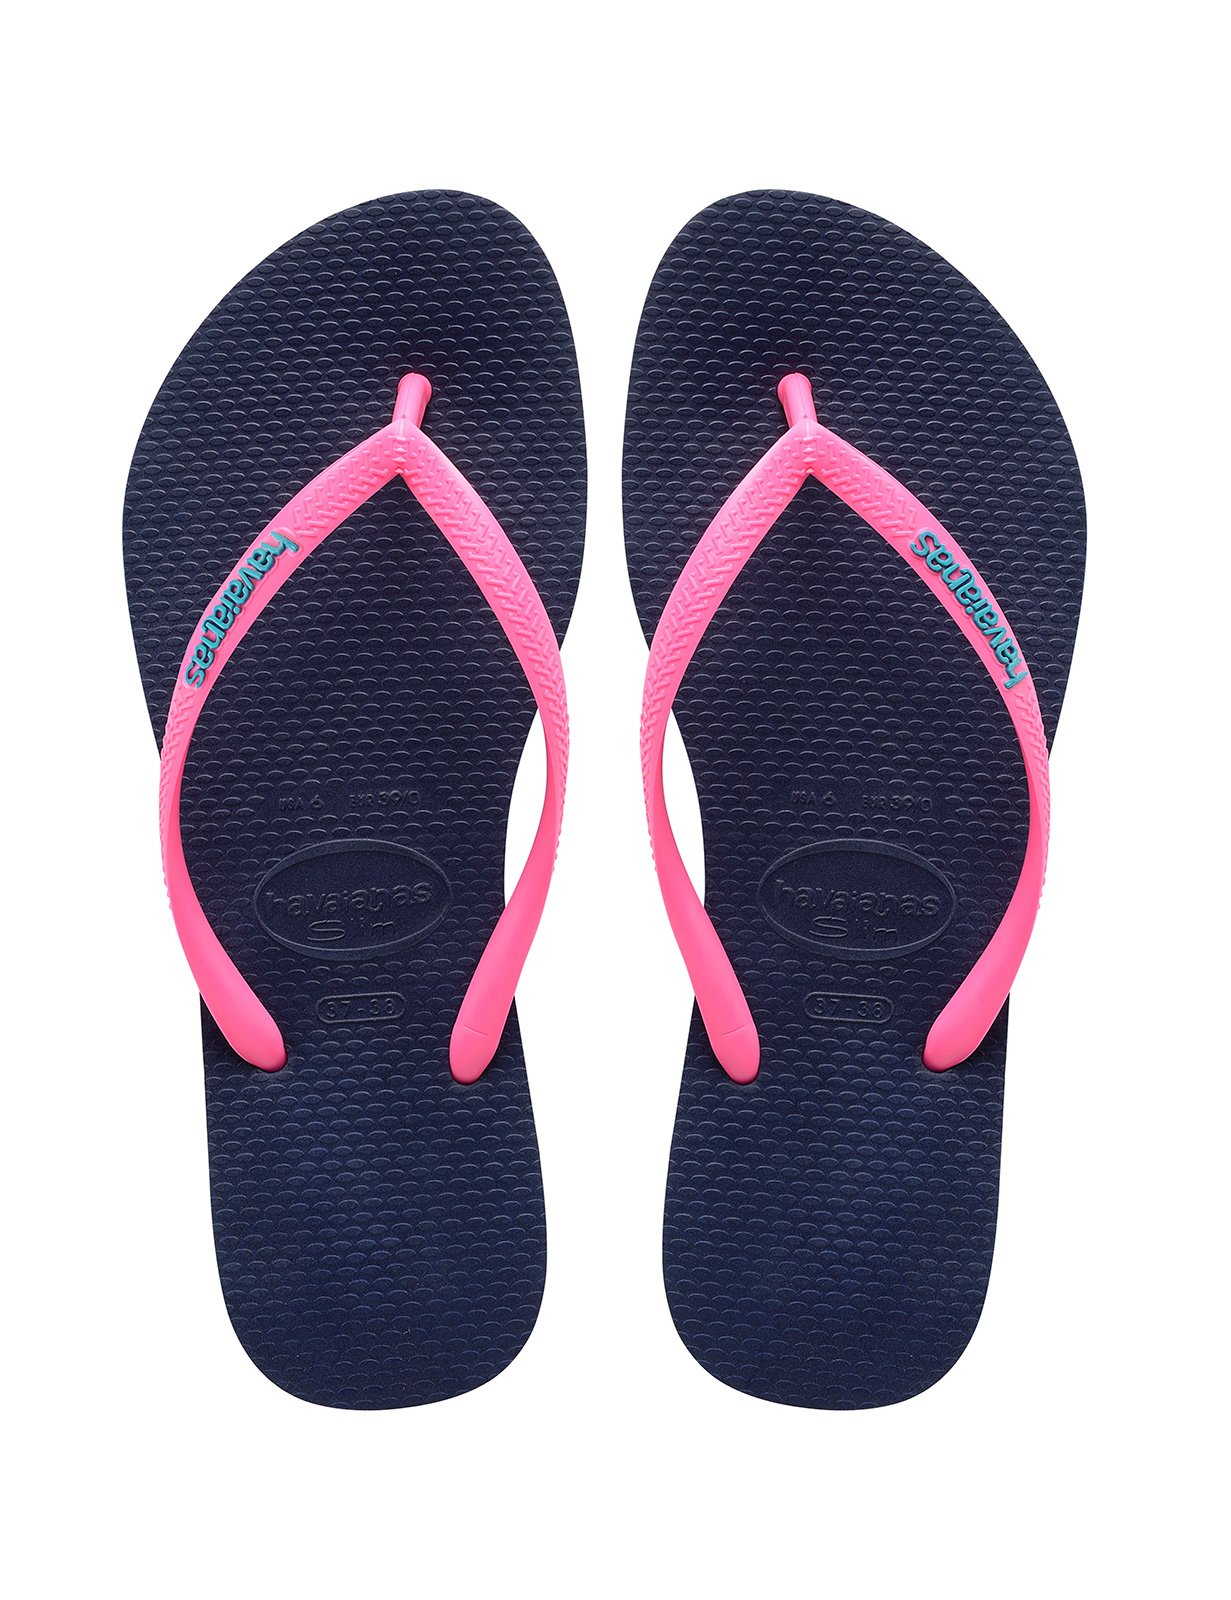 ... Navy blue flip-flops and pink straps with the HAVAIANAS logo - Slim Logo  Navy ... 7047c3abba09